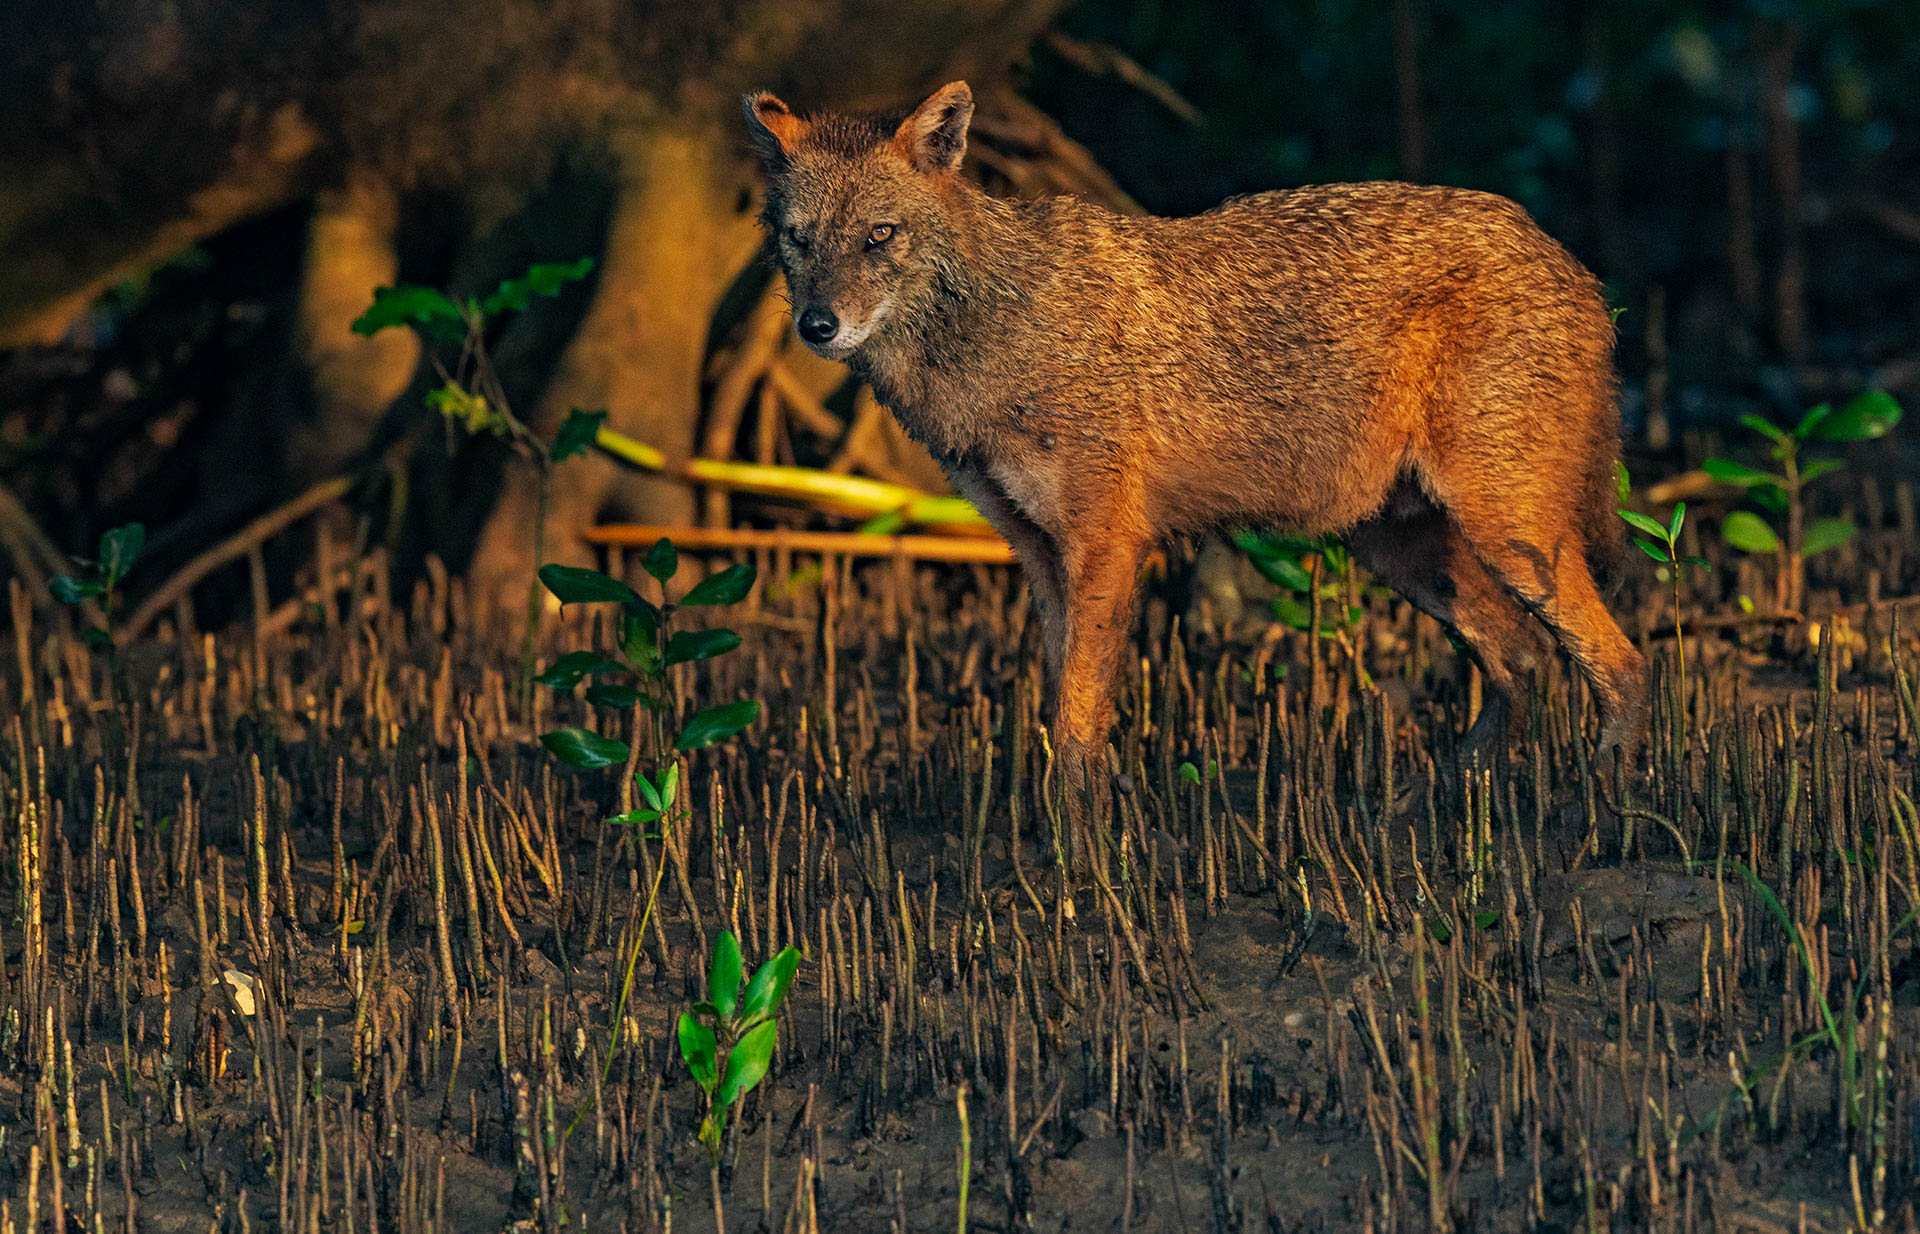 The golden jackal (Canis aureus) is another top predator in Coringa's ecosystem. Its howl is sometimes heard ringing through the forest, but it is hard to spot these stealthy canines in the dense mangroves. Photo: Dhritiman Mukherjee